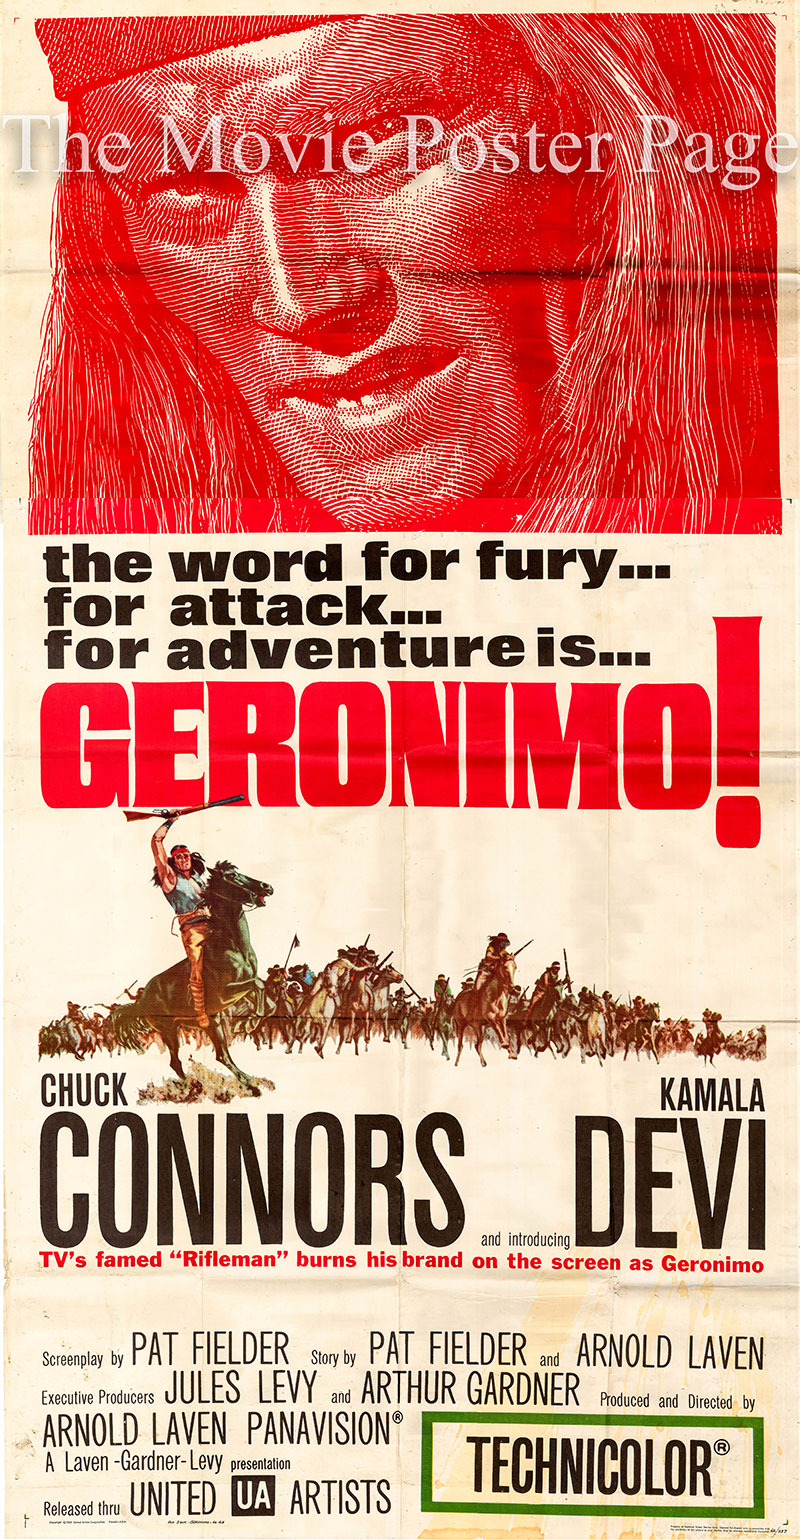 Pictured is a US three-sheet poster for the 1962 Arnold Laven film Geronimo starring Chuck Connors.